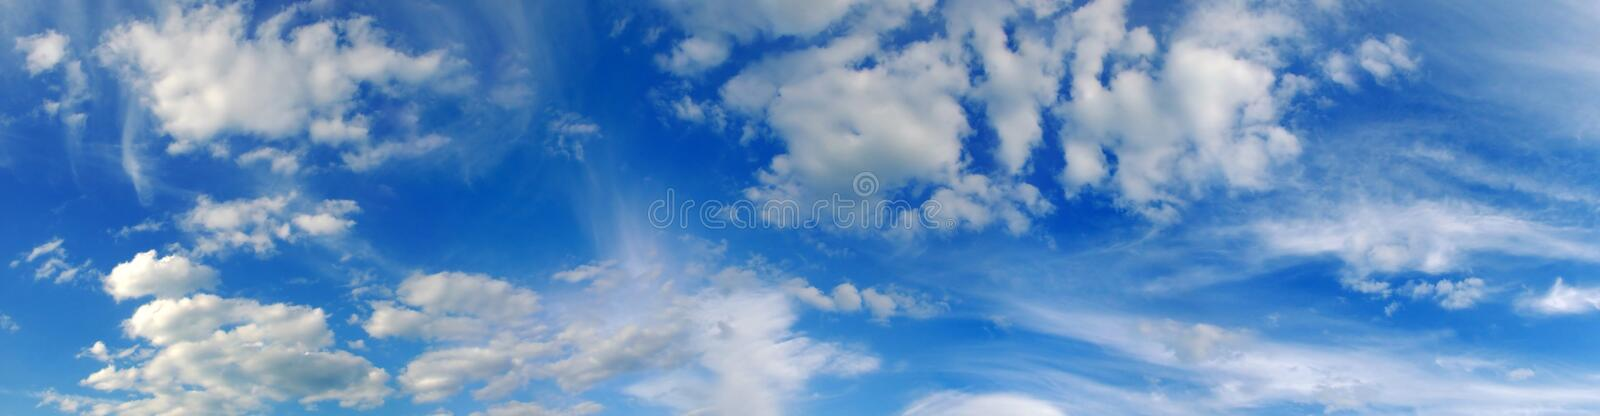 Skyscape stockbild